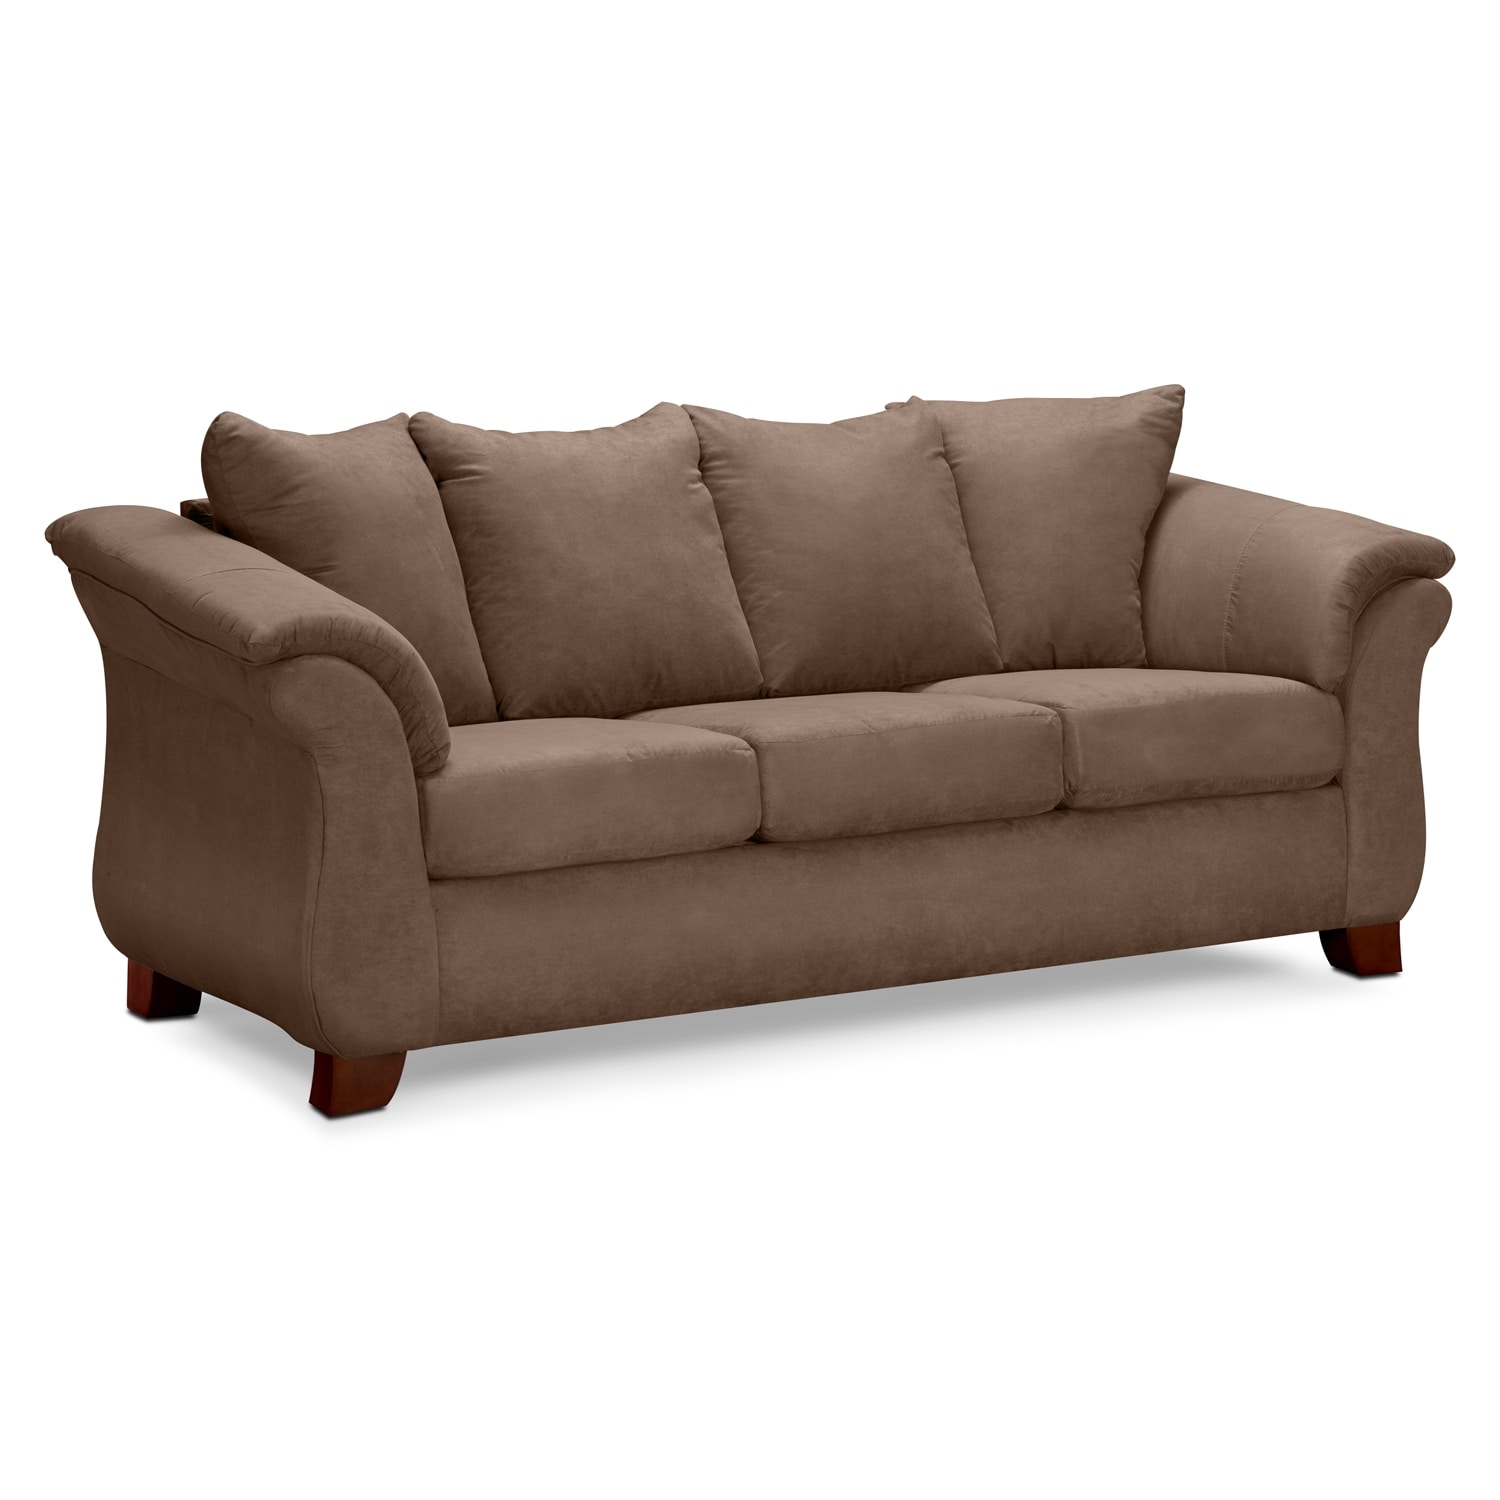 Adrian taupe sofa value city furniture for Furniture furniture